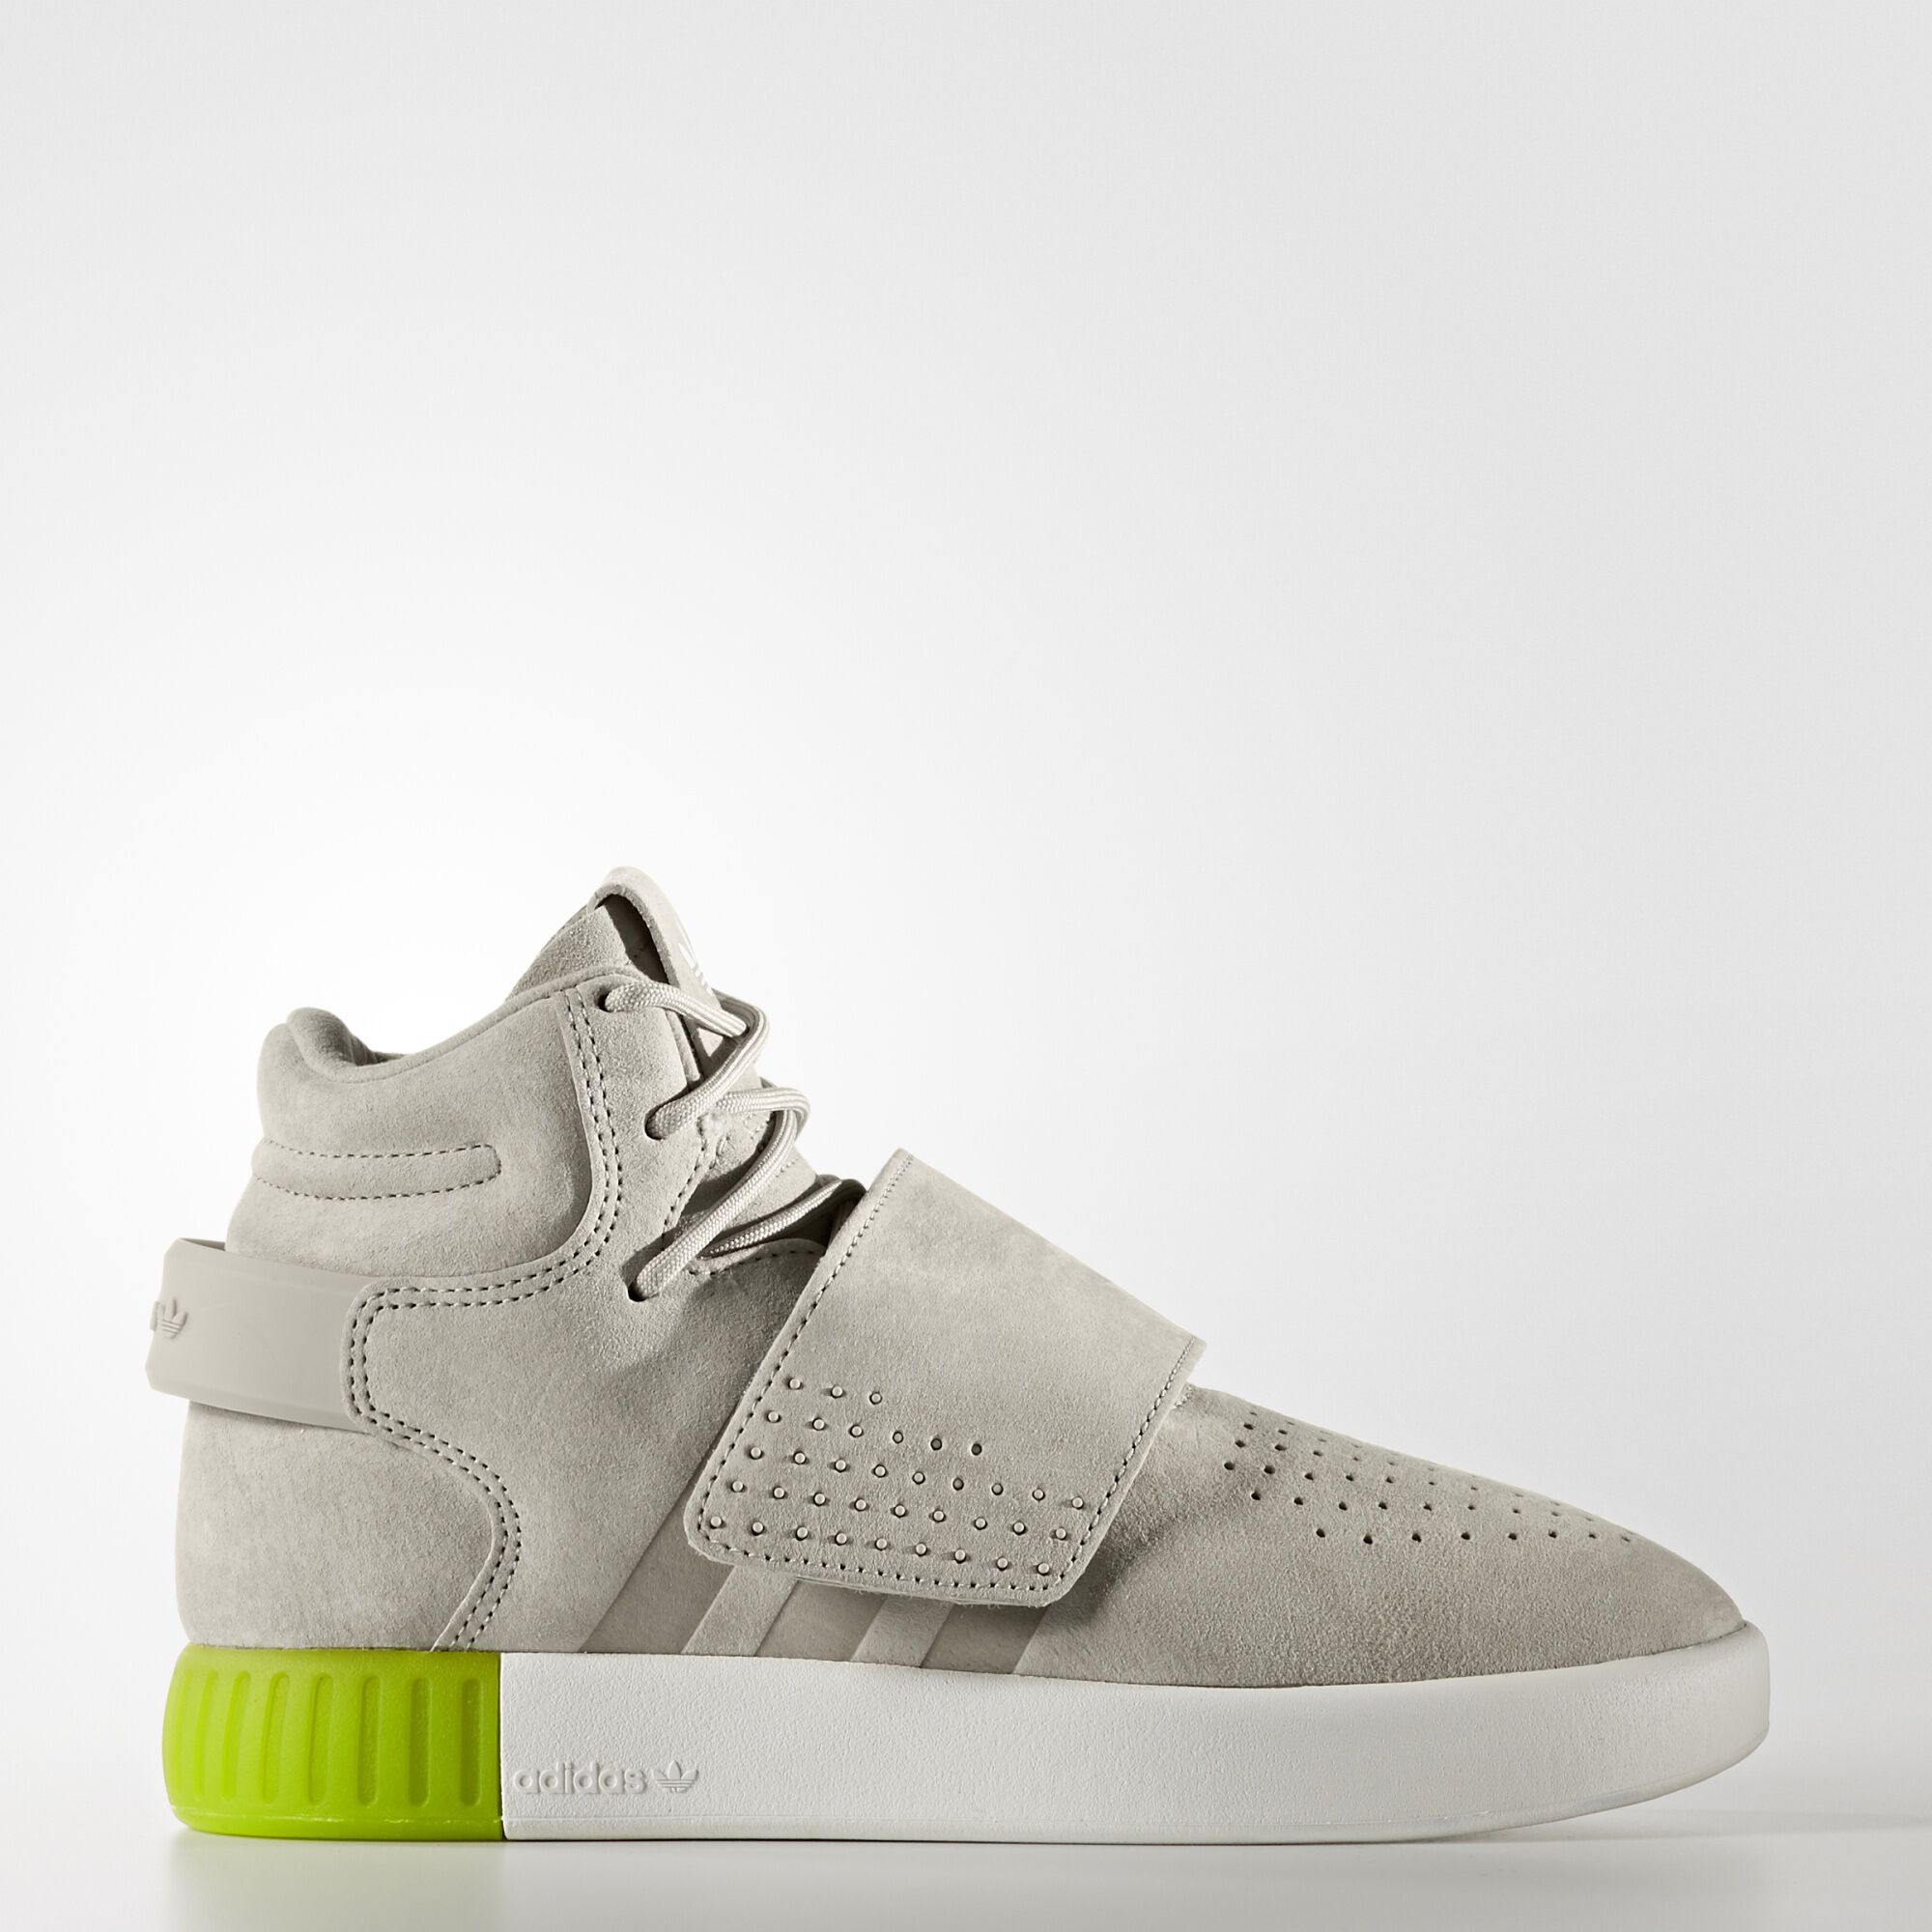 Adidas Tubular Invader Strap (Green) (Camo) Limited (Finishline) 99usd